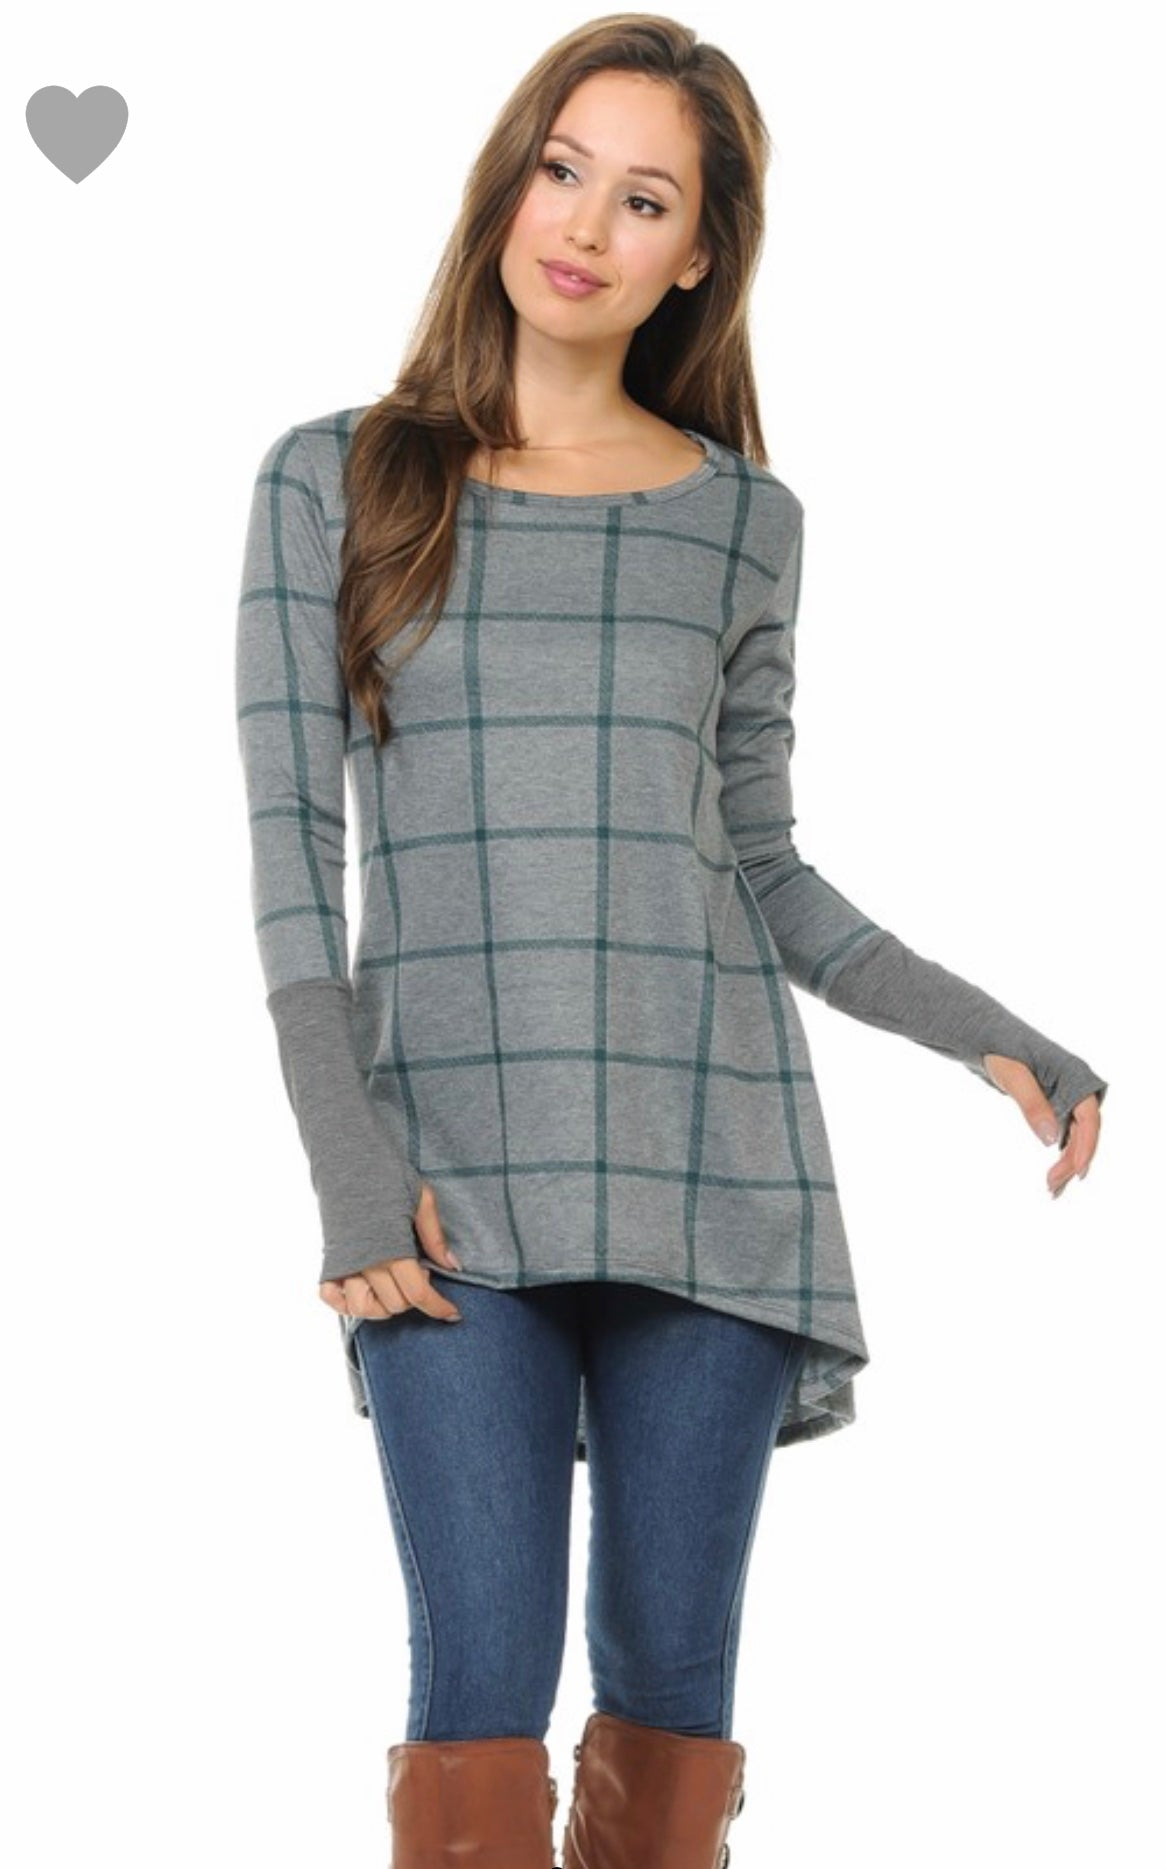 High Low Teal Plaid Tunic top